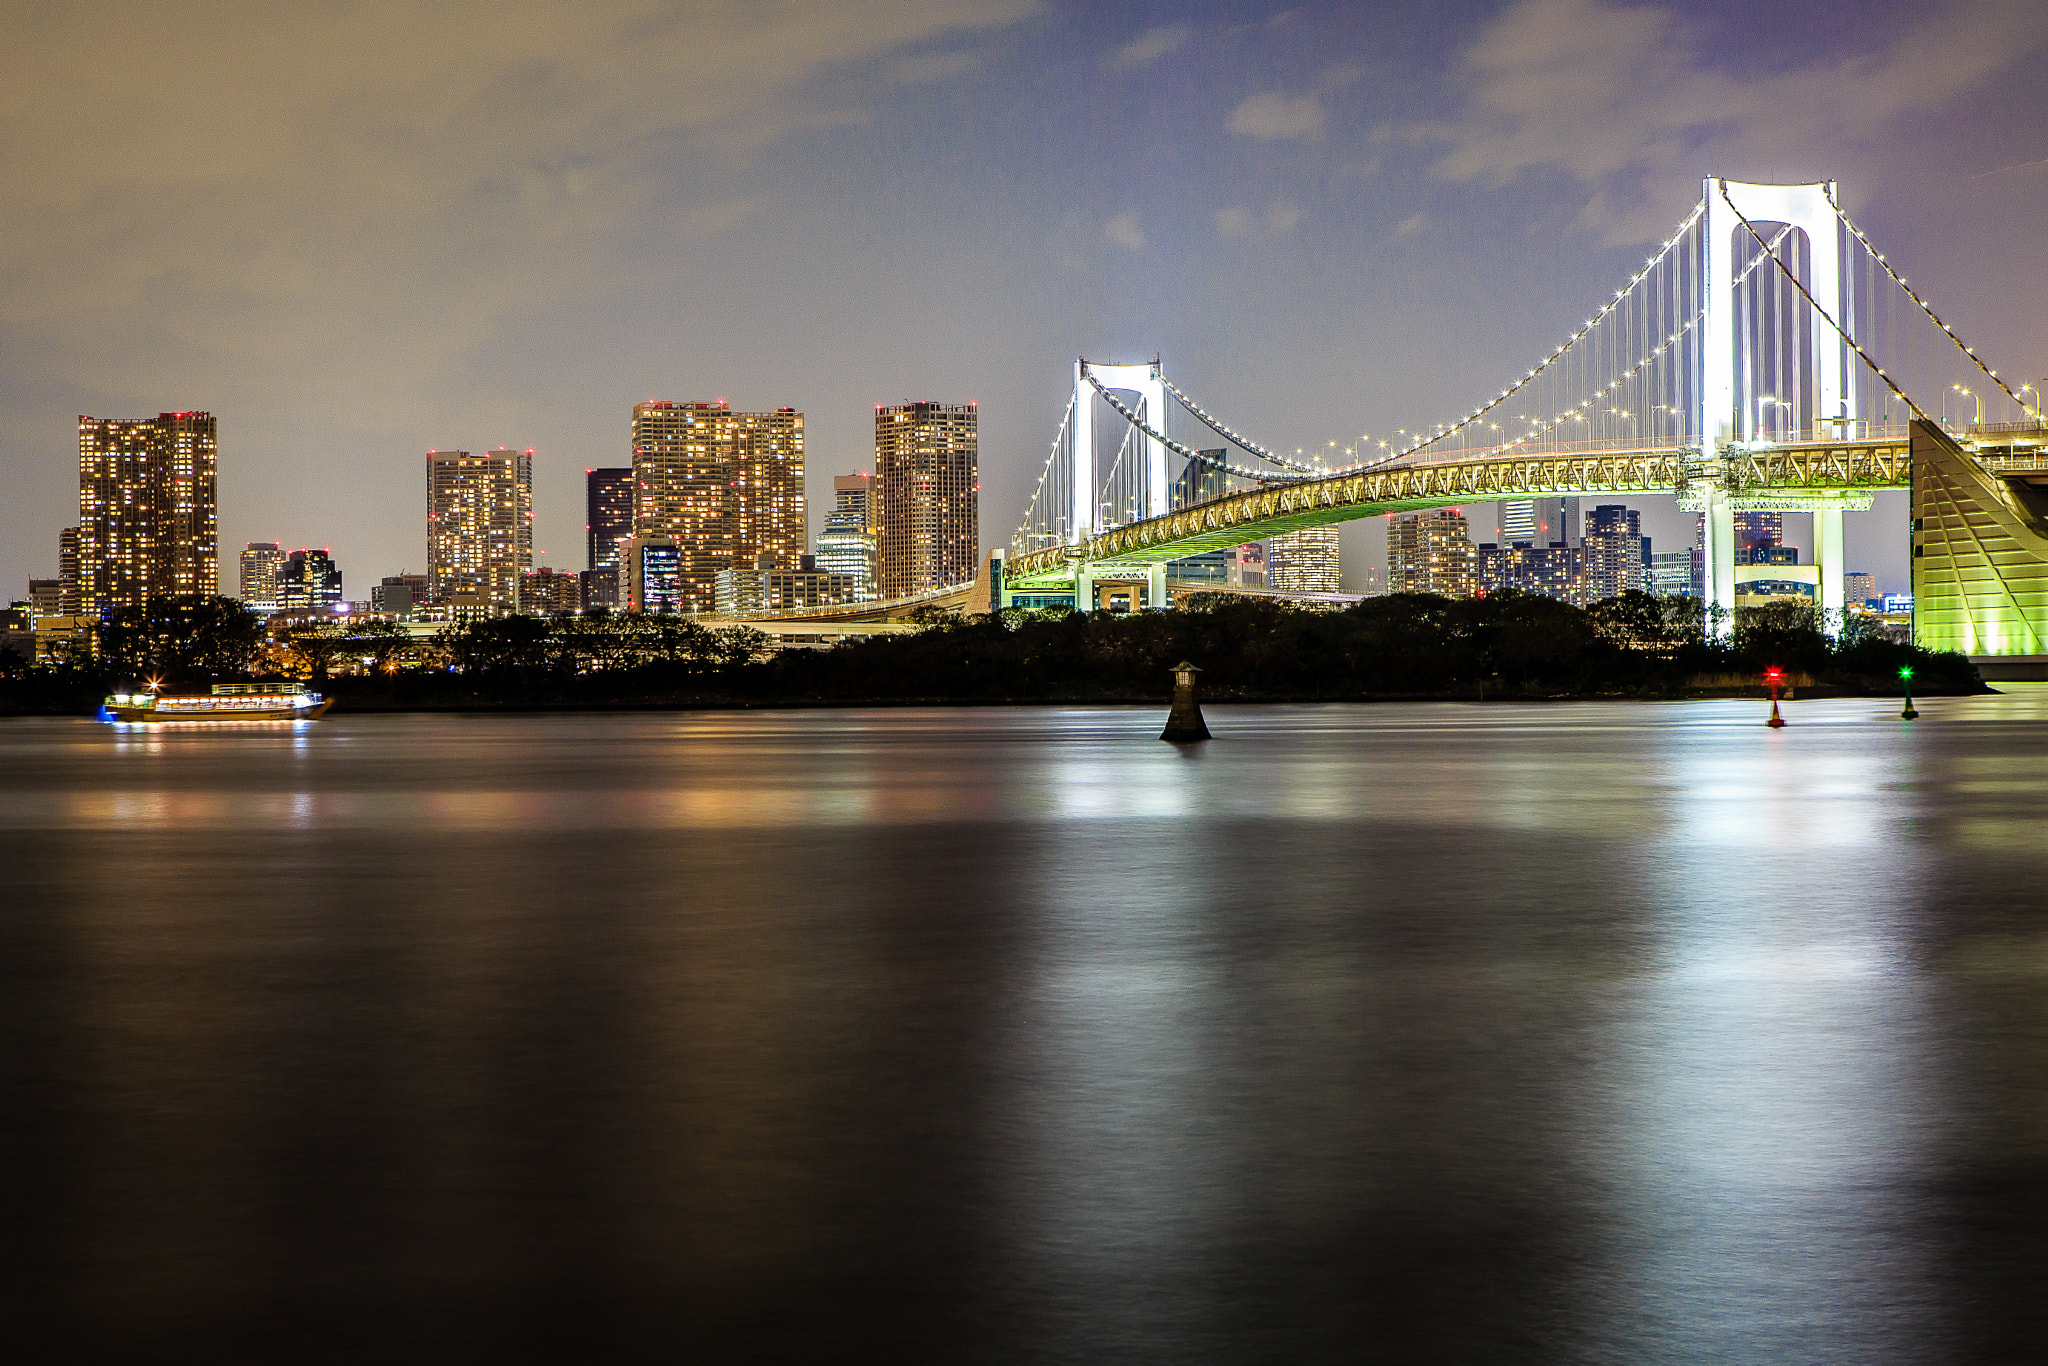 Photograph View of Odaiba 2 by Huy Tonthat 2 on 500px